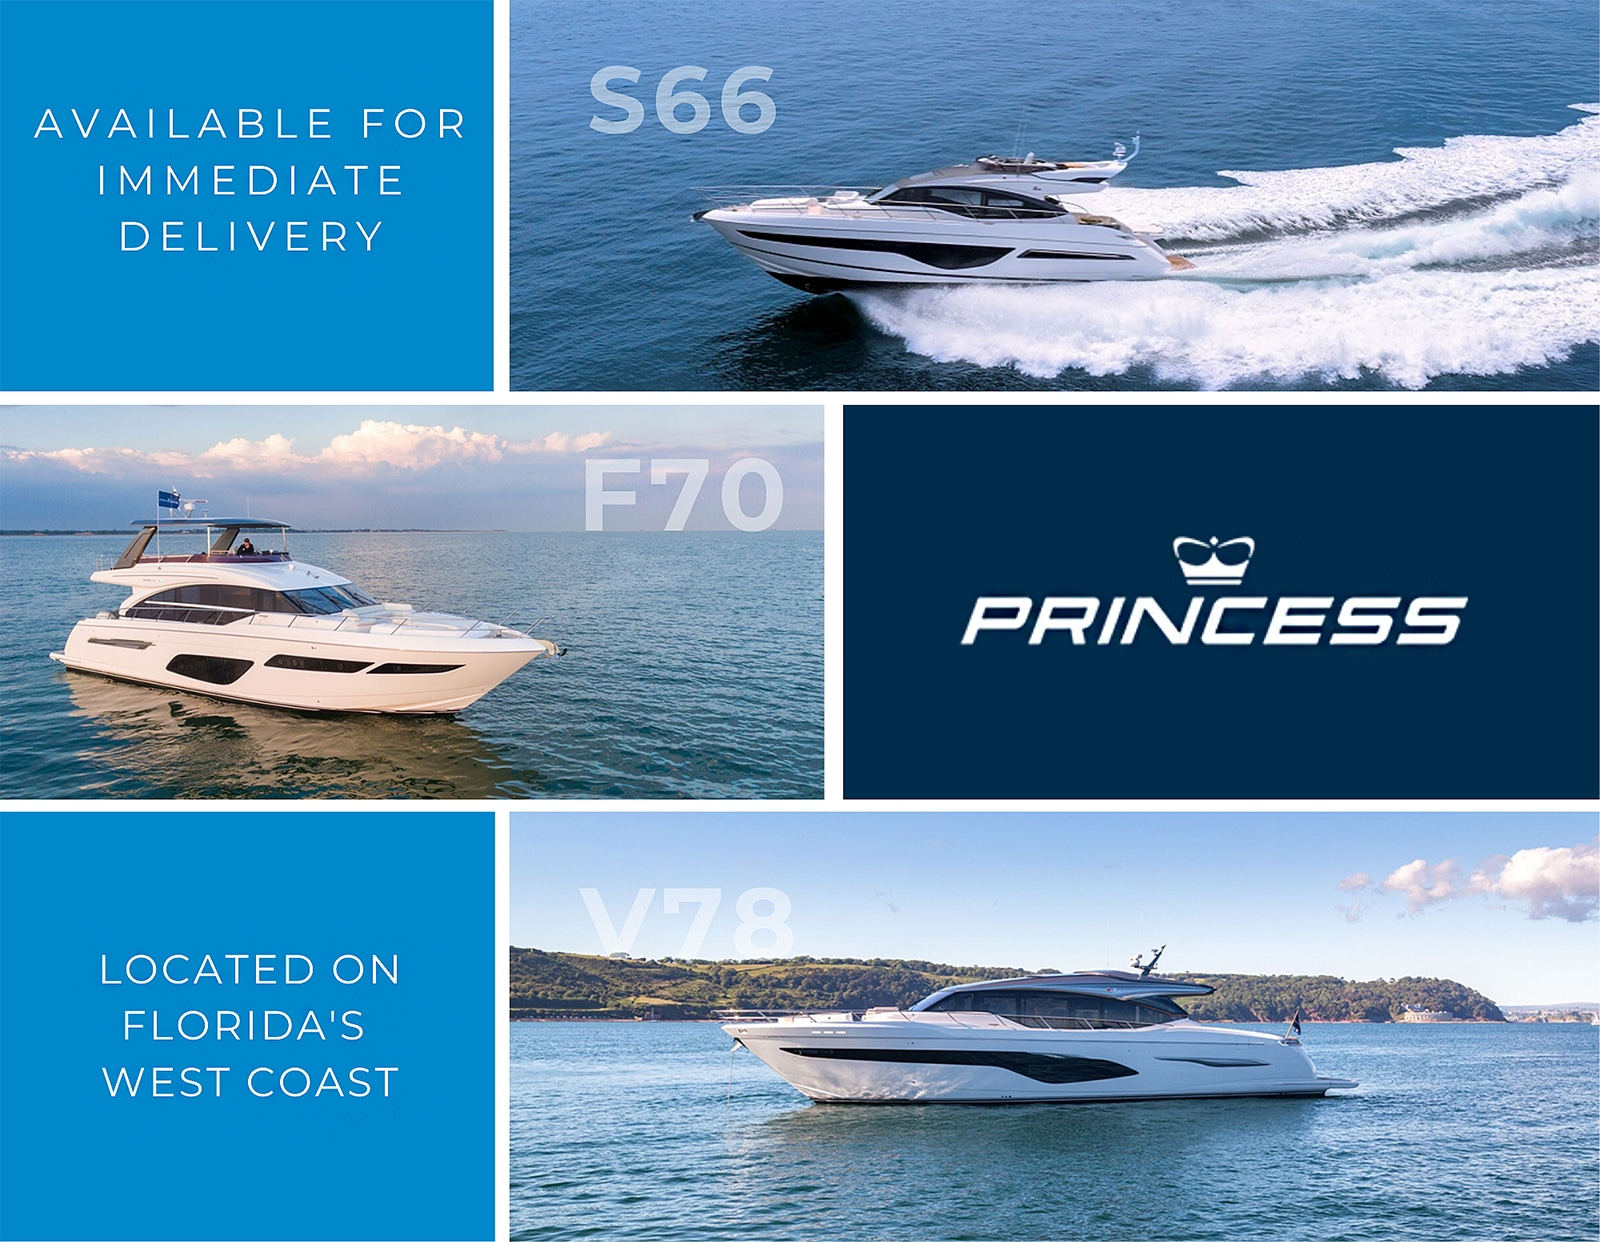 Available Princess Yachts on FL's West Coast...